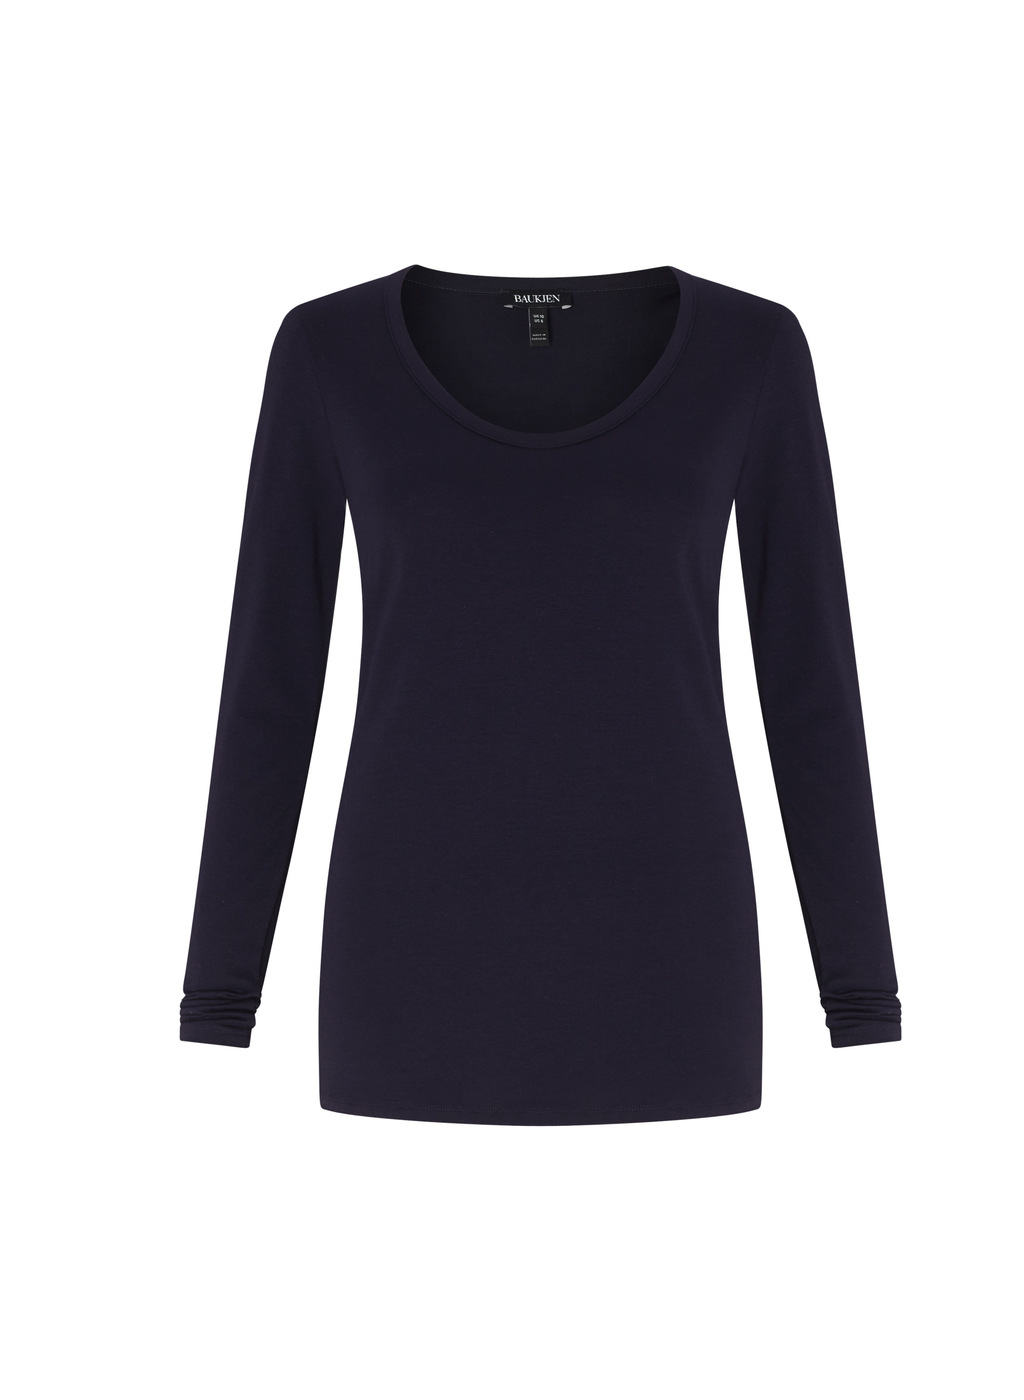 Womenswear Whitson Lounge Top - neckline: round neck; pattern: plain; style: t-shirt; predominant colour: navy; occasions: casual; length: standard; fibres: cotton - stretch; fit: body skimming; sleeve length: long sleeve; sleeve style: standard; texture group: jersey - clingy; pattern type: fabric; wardrobe: basic; season: a/w 2016